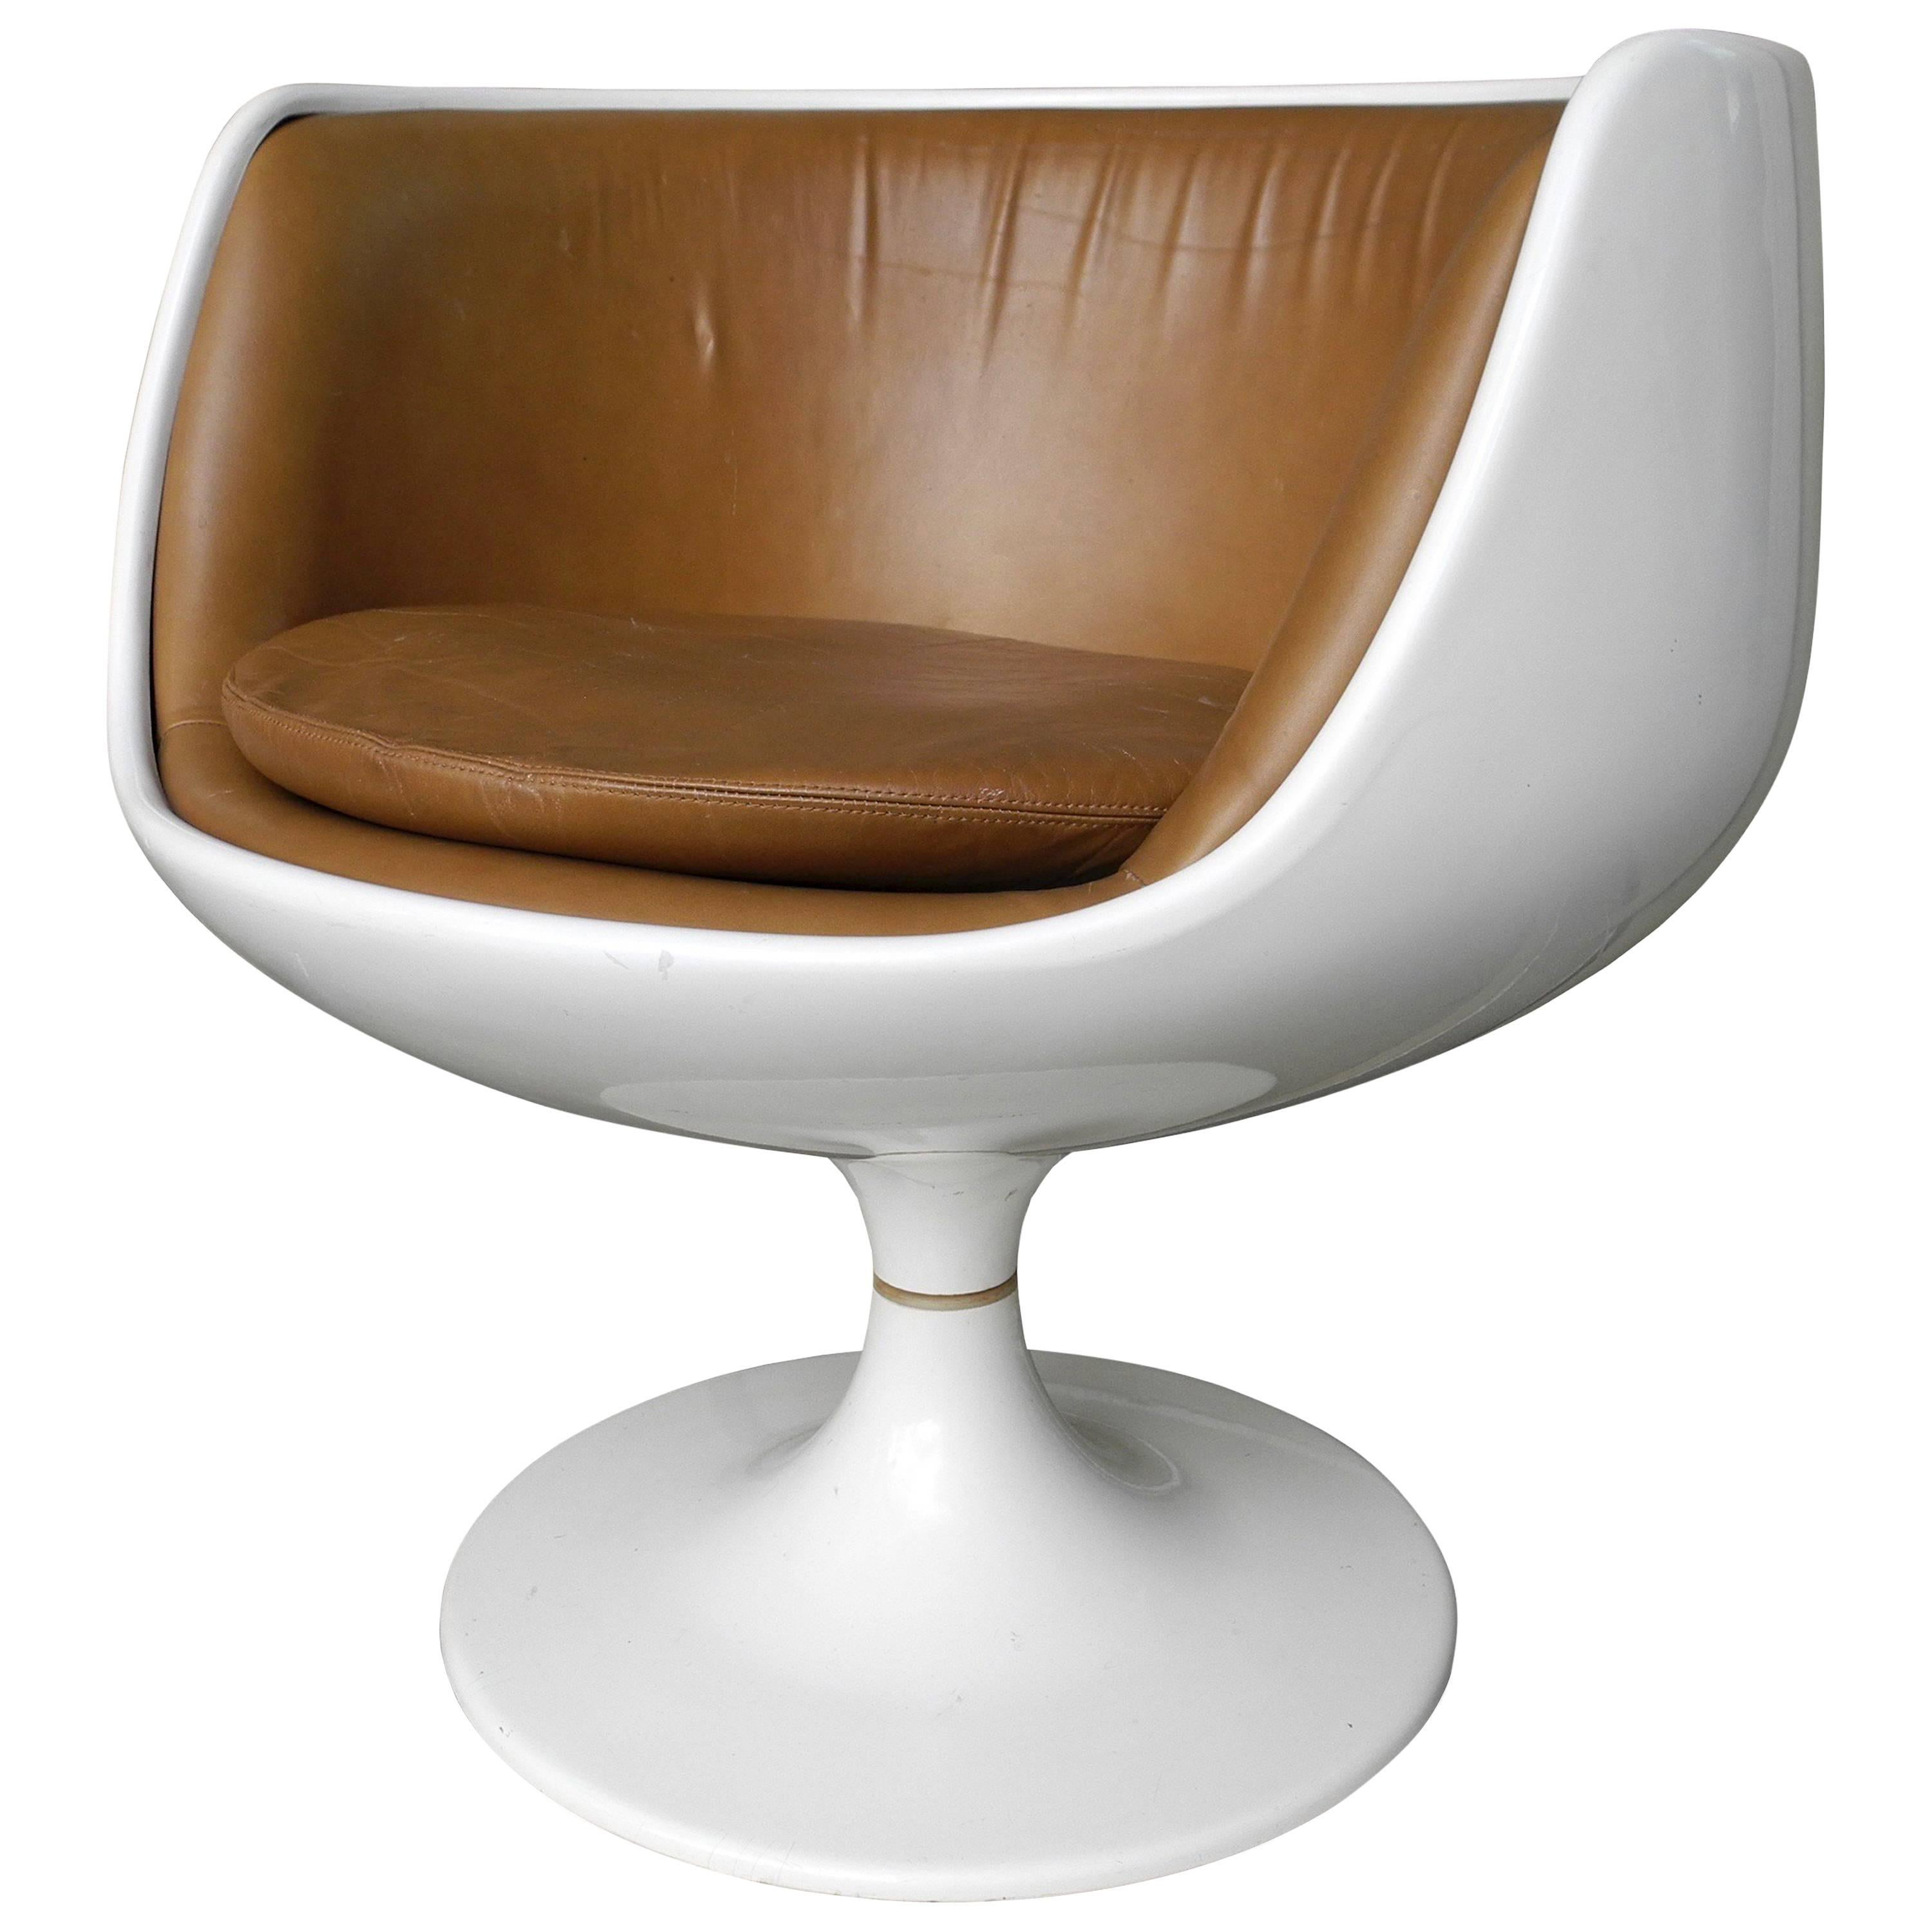 Cognac Chair With Leather Interior By Eero Aarnio For Asko, Finland, 1960s  For Sale